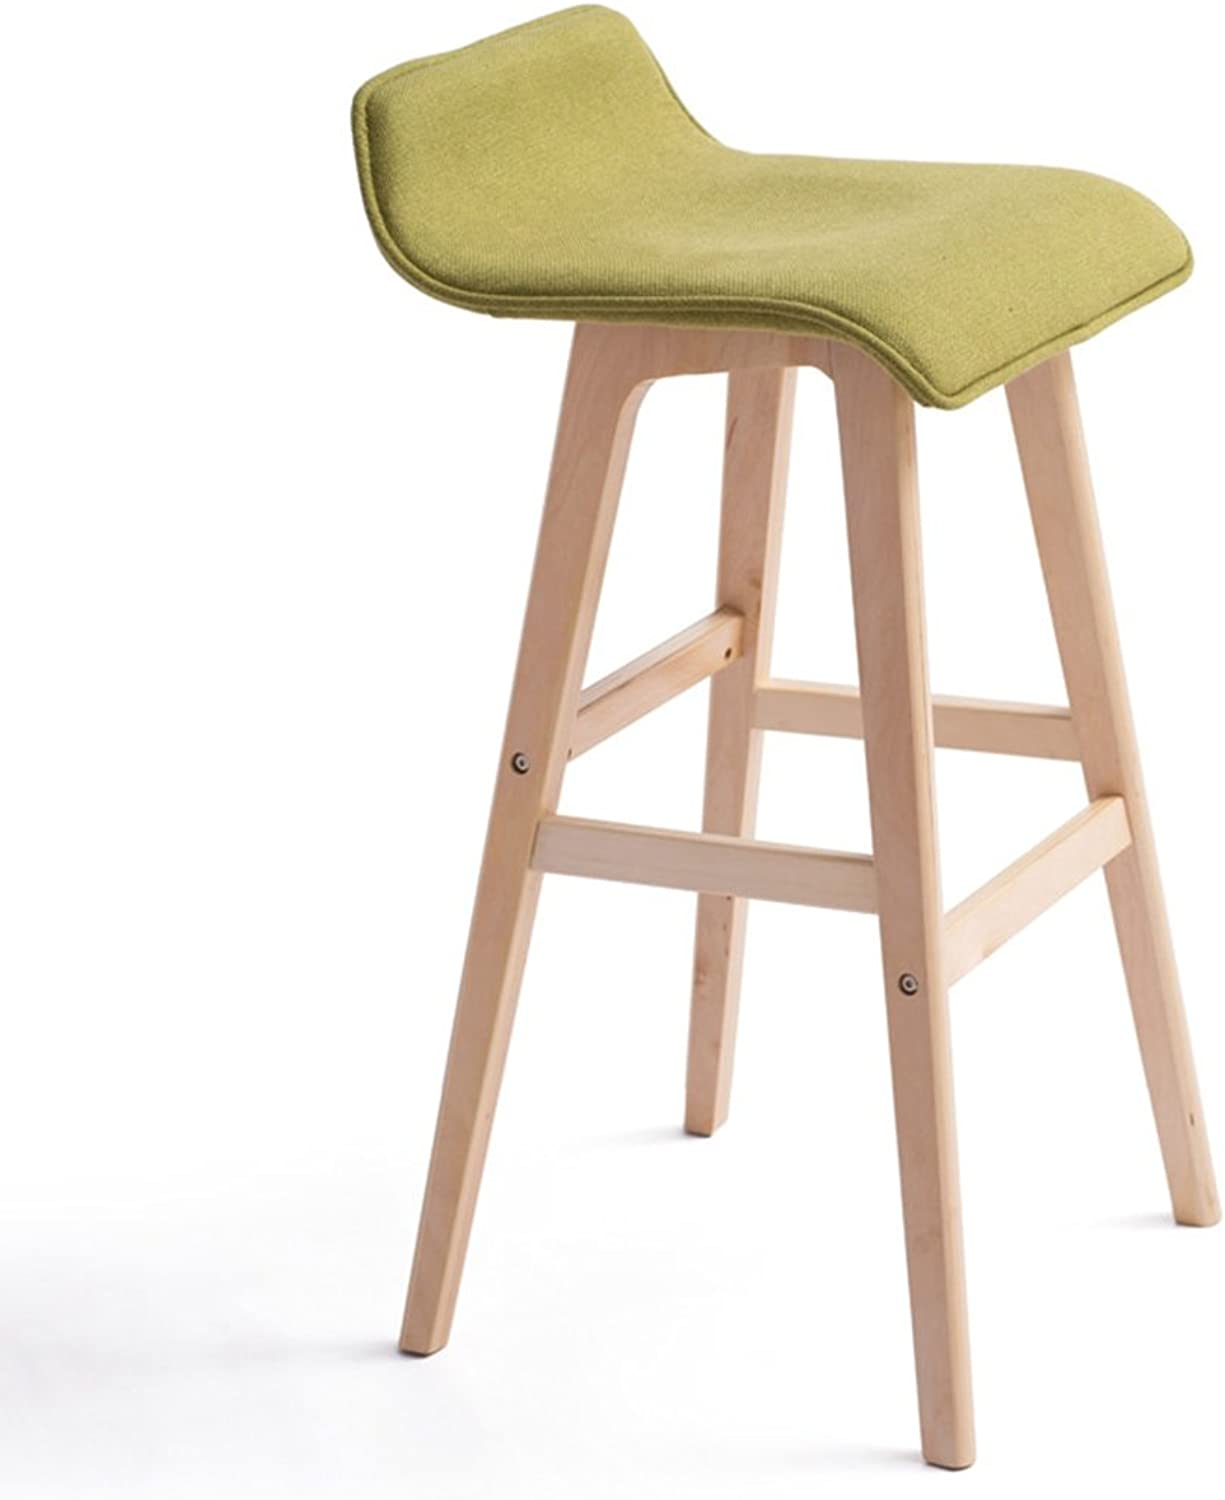 PeaceipUS Minimalistic, Solid Wood, Cotton Linen Cushion Bar Front Desk European Chair Wooden Bench Vintage Bar Stool Height 65cm, and 74cm (color   A, Size   74cm)